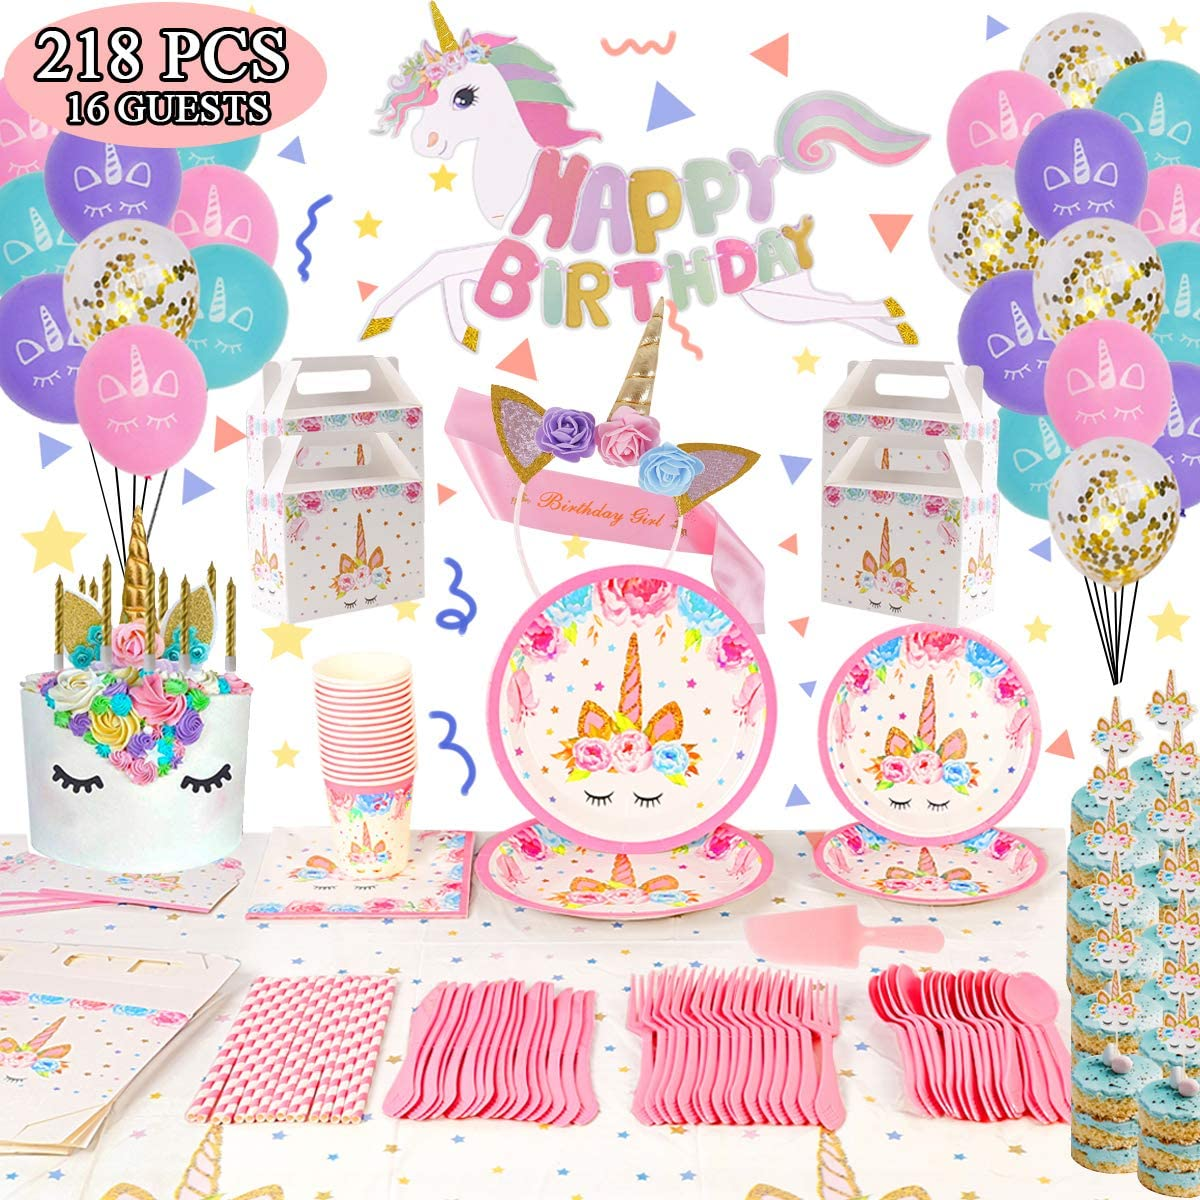 218 Pack Unicorn Party Supplies Set, Unicorn Birthday Packs Includs Flatware,Spoons,Plates,Tablecloth,Cups,Straws,Napkins,Invitation cards, Balloon,Box,Banner,Cake Topper